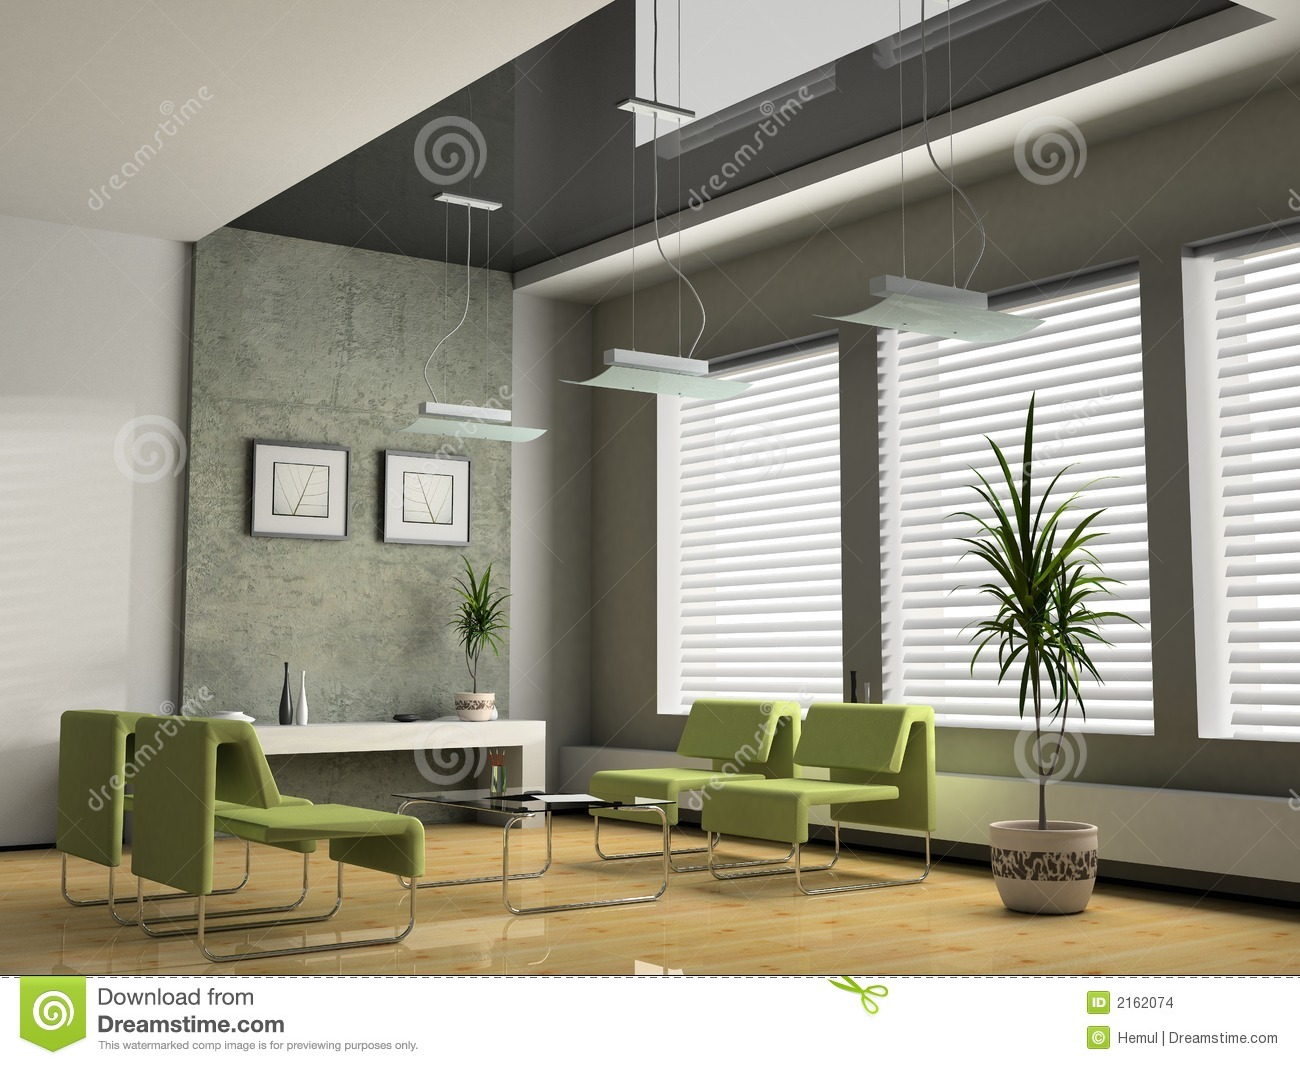 Interior office 3d stock illustration image of bottle for Interior design photos free download